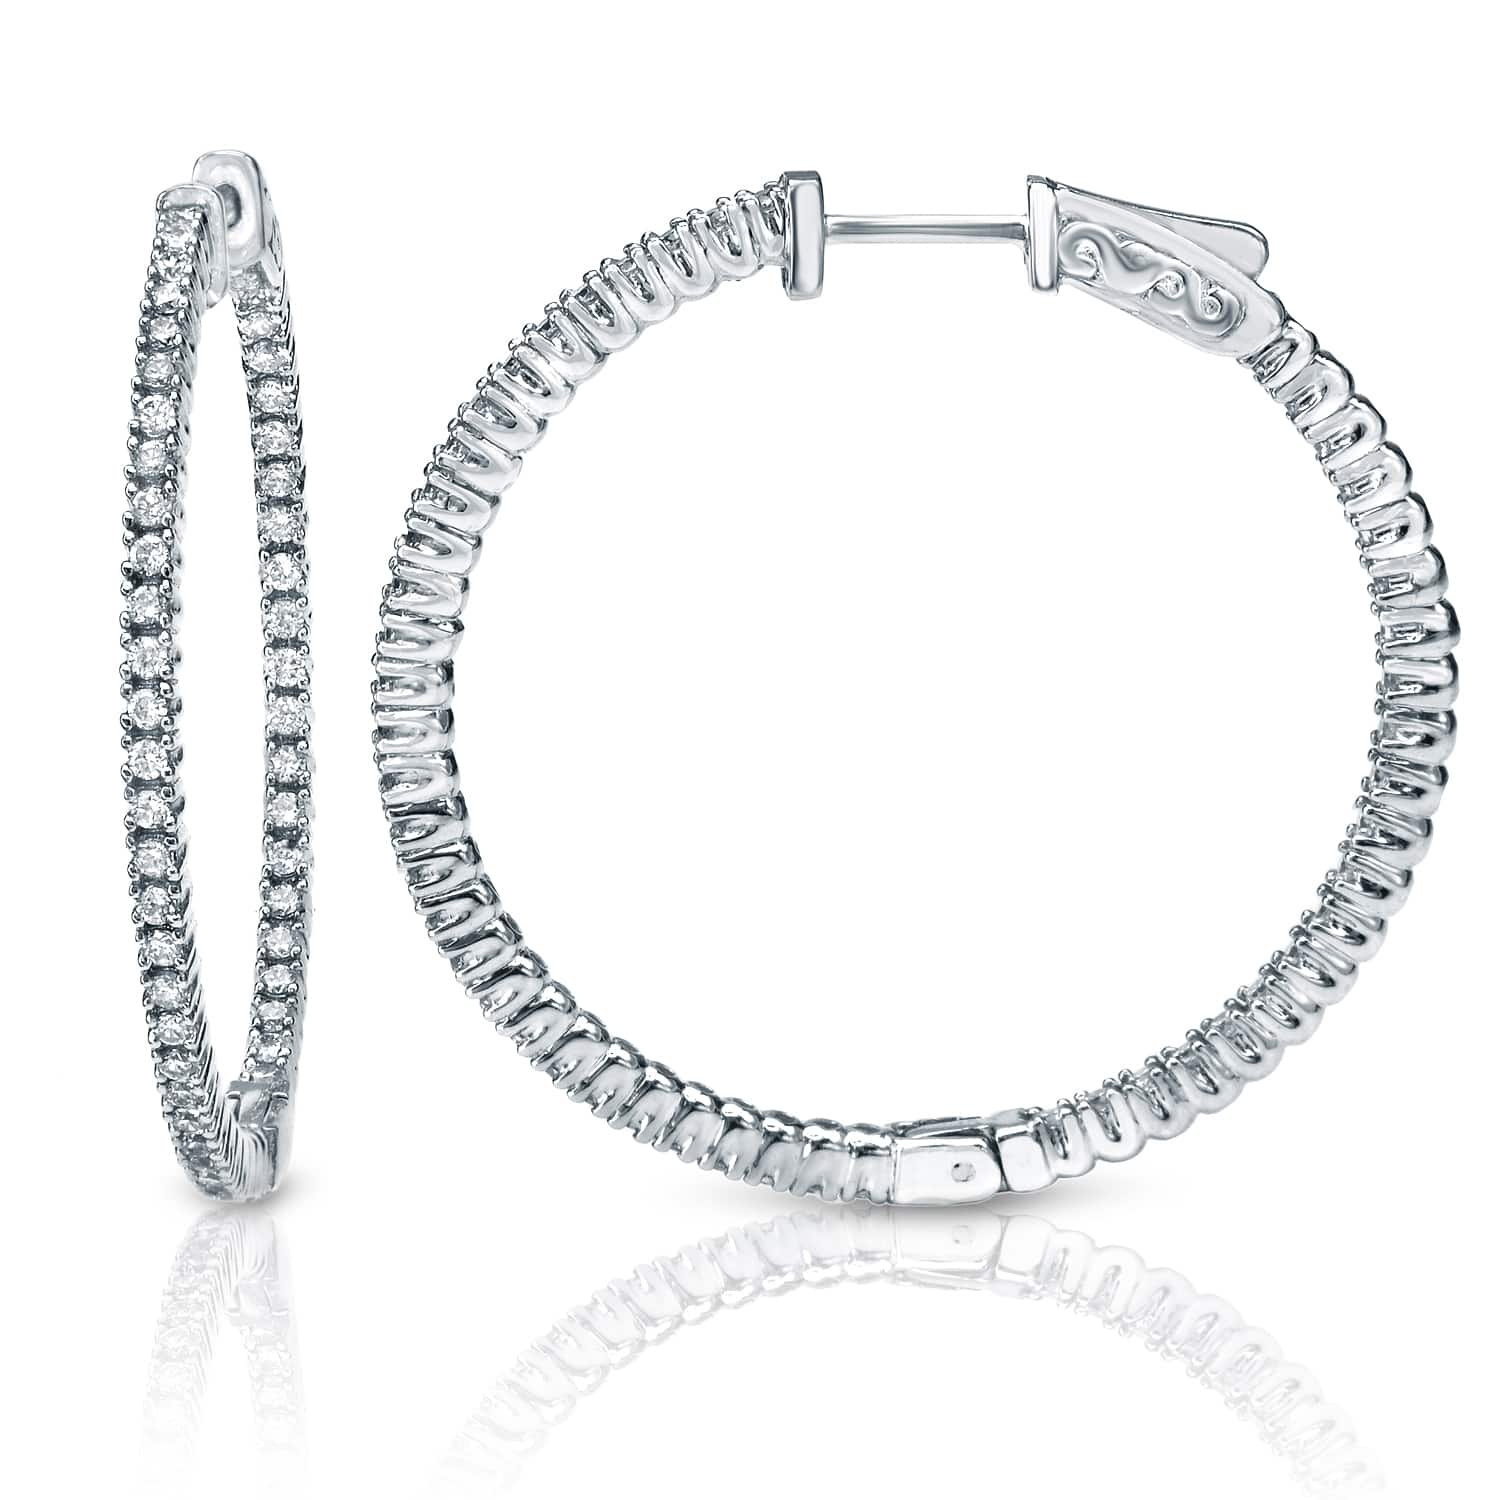 Auriya 14k White or Yellow Gold 3ct TDW 58mm Diamond Hoop Earrings|https://ak1.ostkcdn.com/images/products/8184536/82/567/Auriya-14k-White-or-Yellow-Gold-3ct-TDW-58mm-Diamond-Hoop-Earrings-H-I-SI1-SI2-P15521162.jpg?impolicy=medium